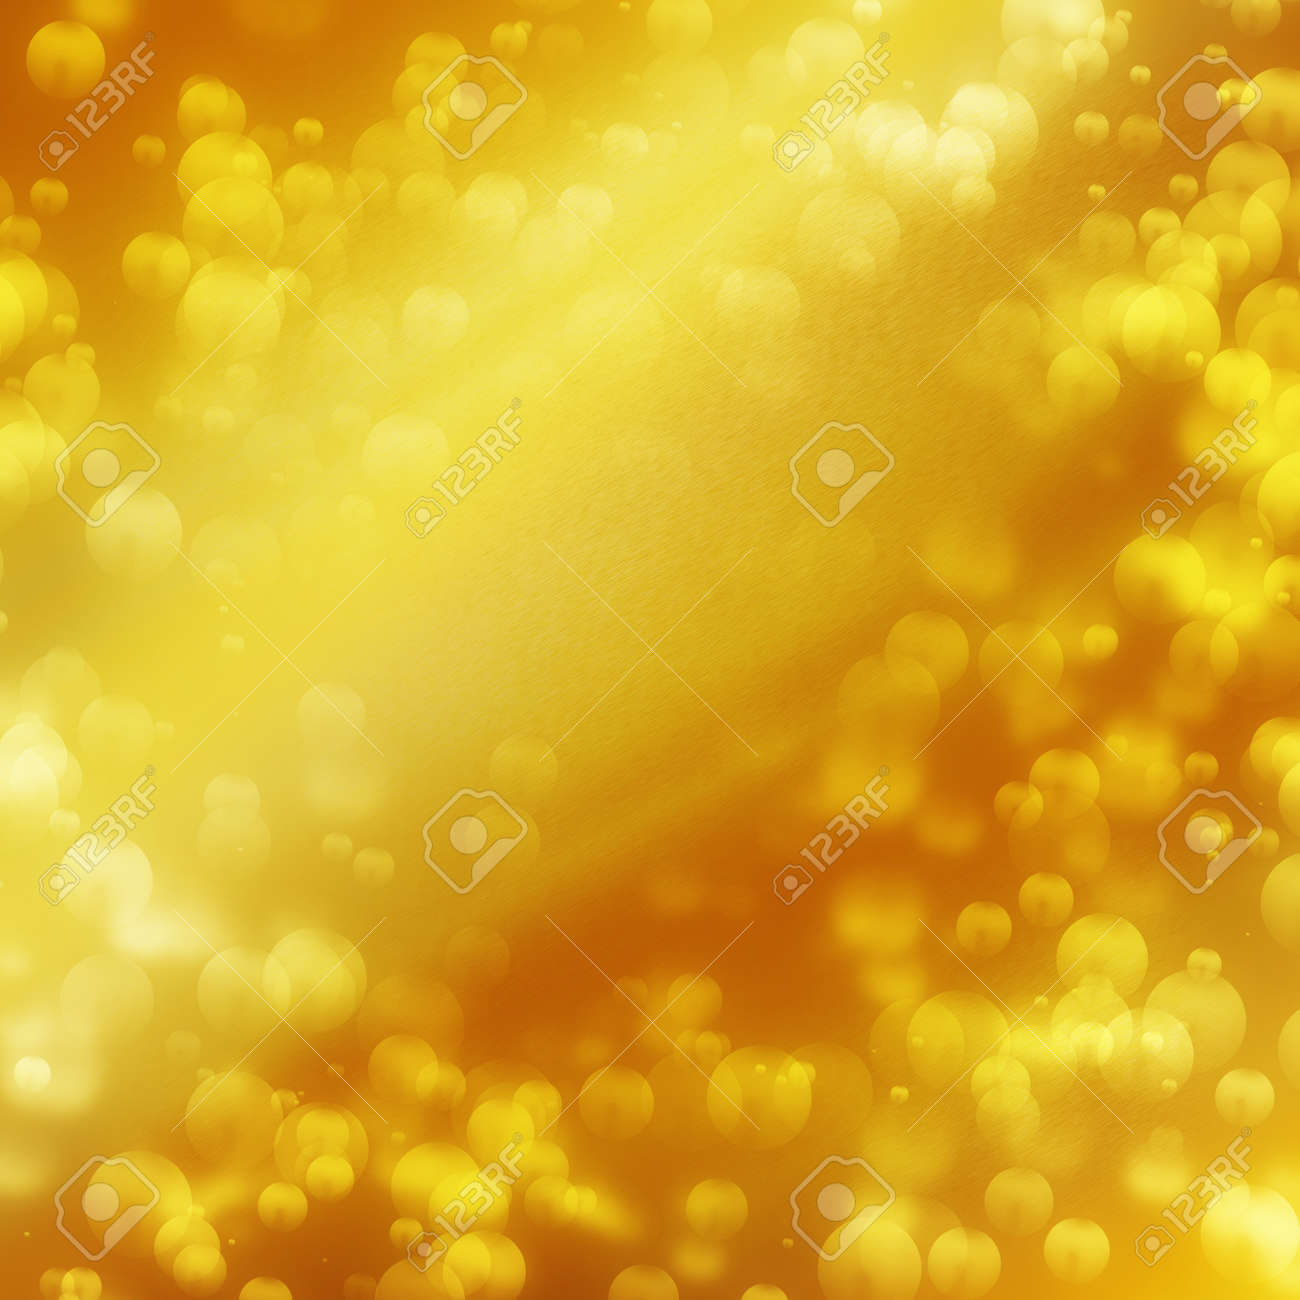 decorative background texture in gold color bokeh illustration may use to greeting card design Stock Photo - 21134543